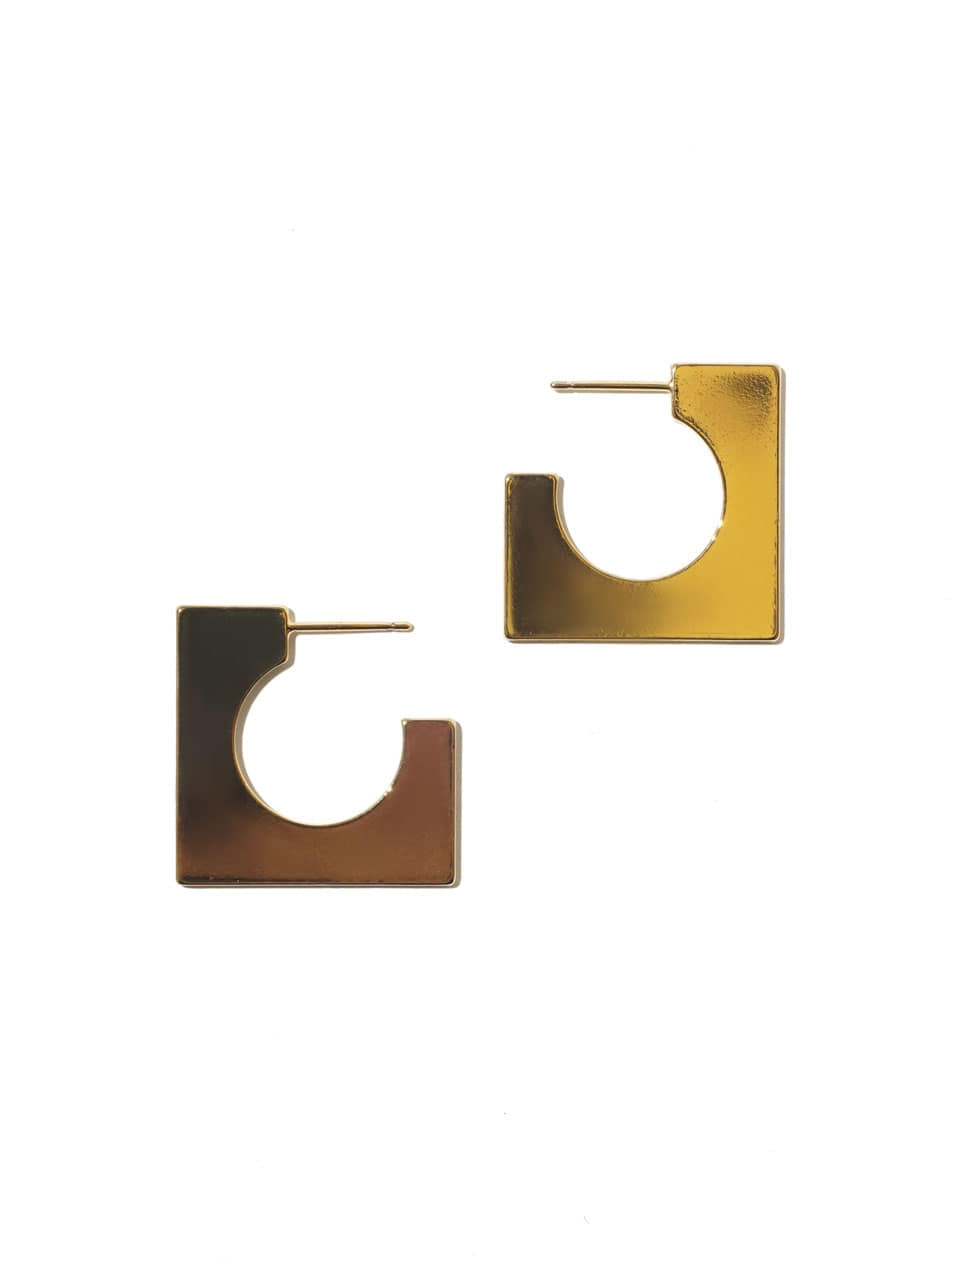 Flat square ring earrings